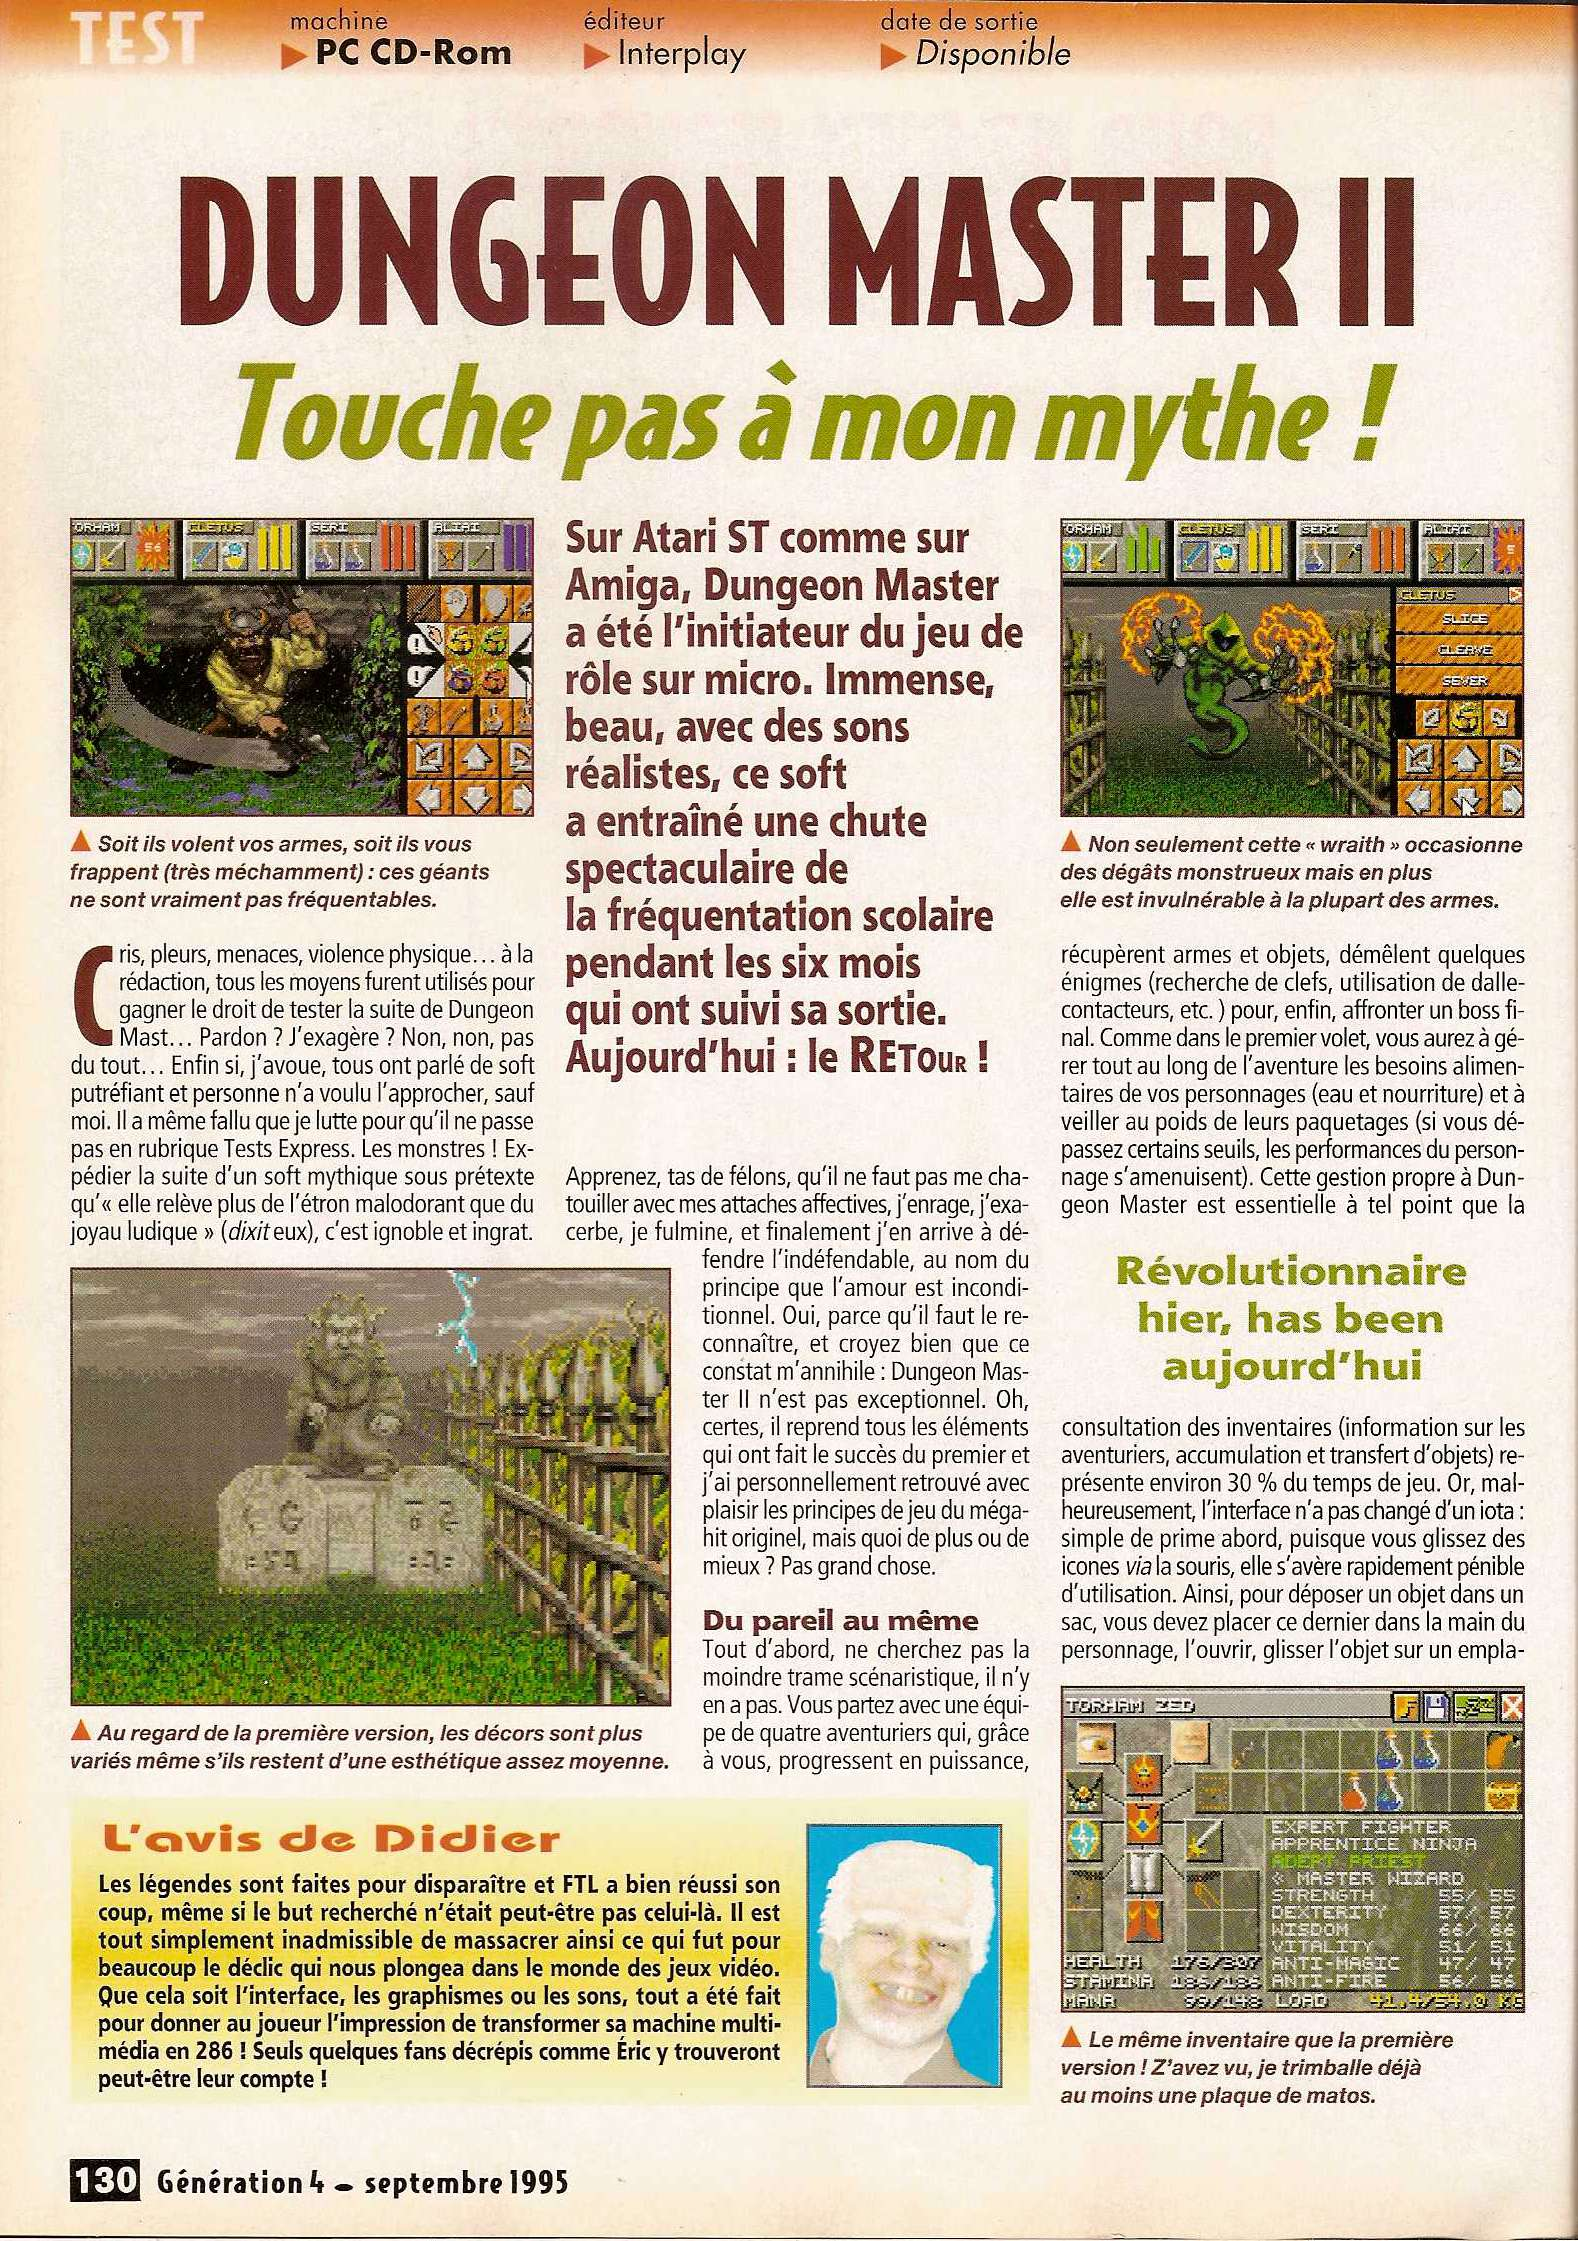 Dungeon Master II for PC Review published in French magazine 'Generation 4', Issue #80 September 1995, Page 130